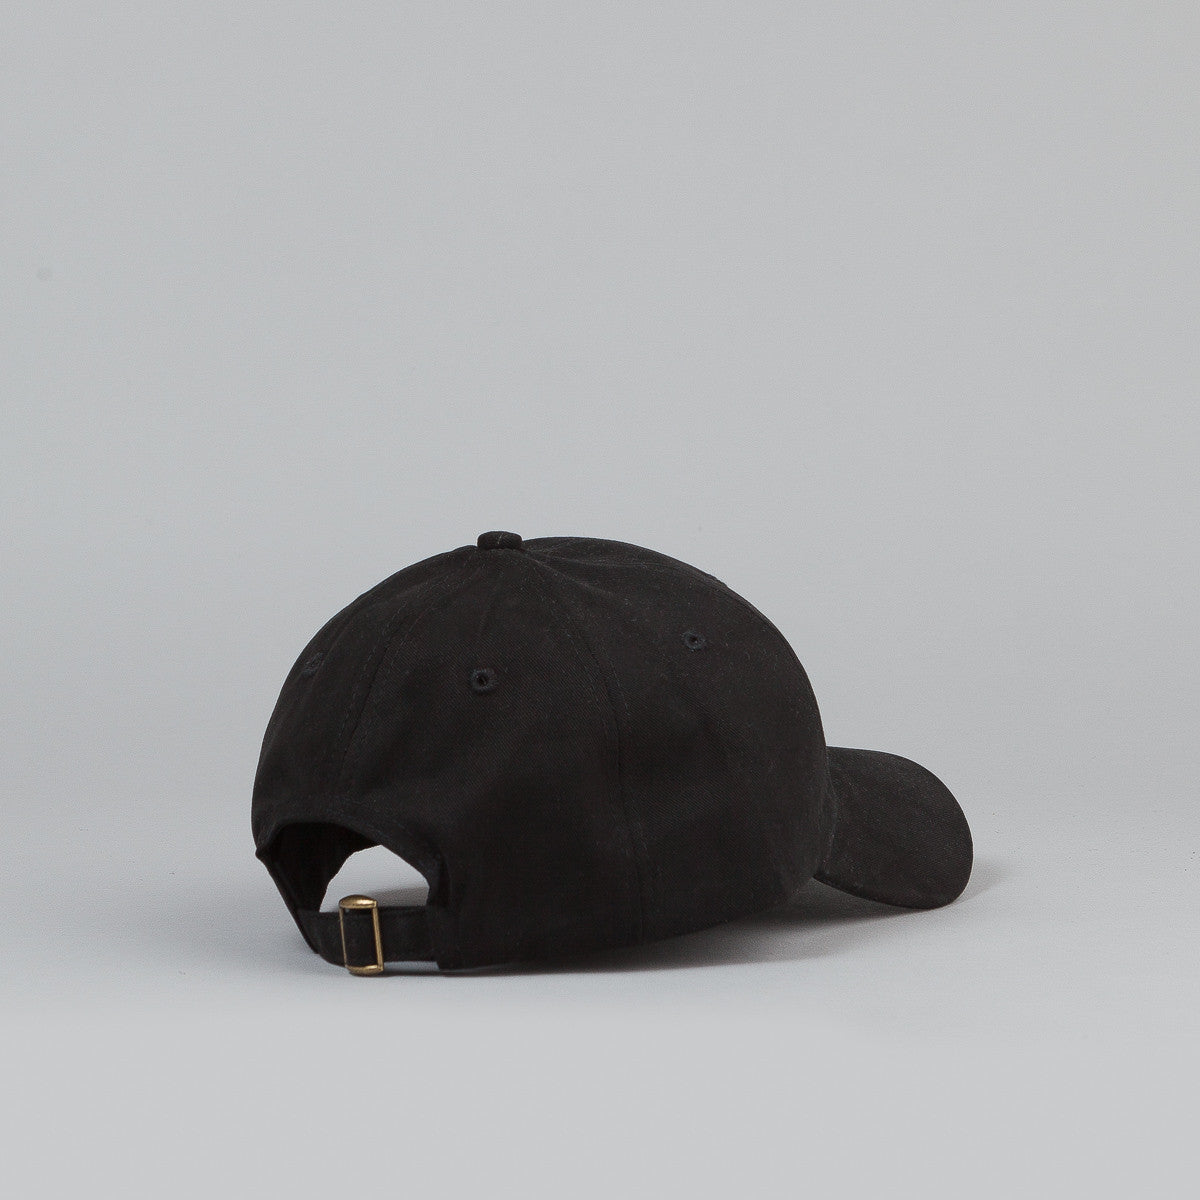 Yardsale Floral 6 Panel Cap - Black